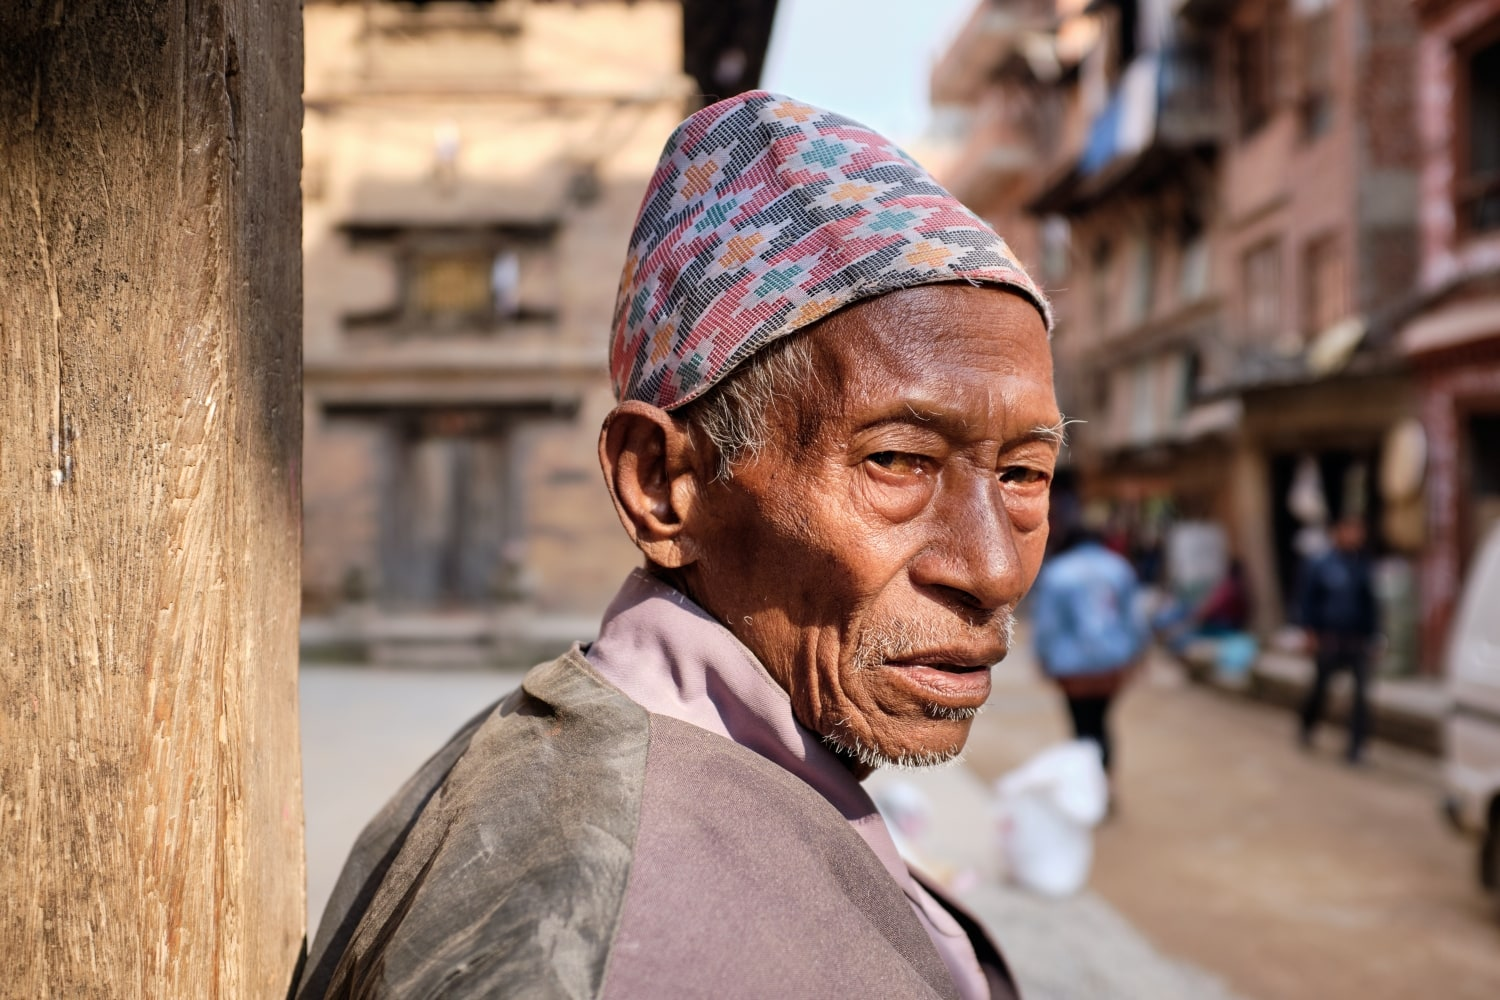 A man wearing Dhaka Topi photographed in Bhaktapur